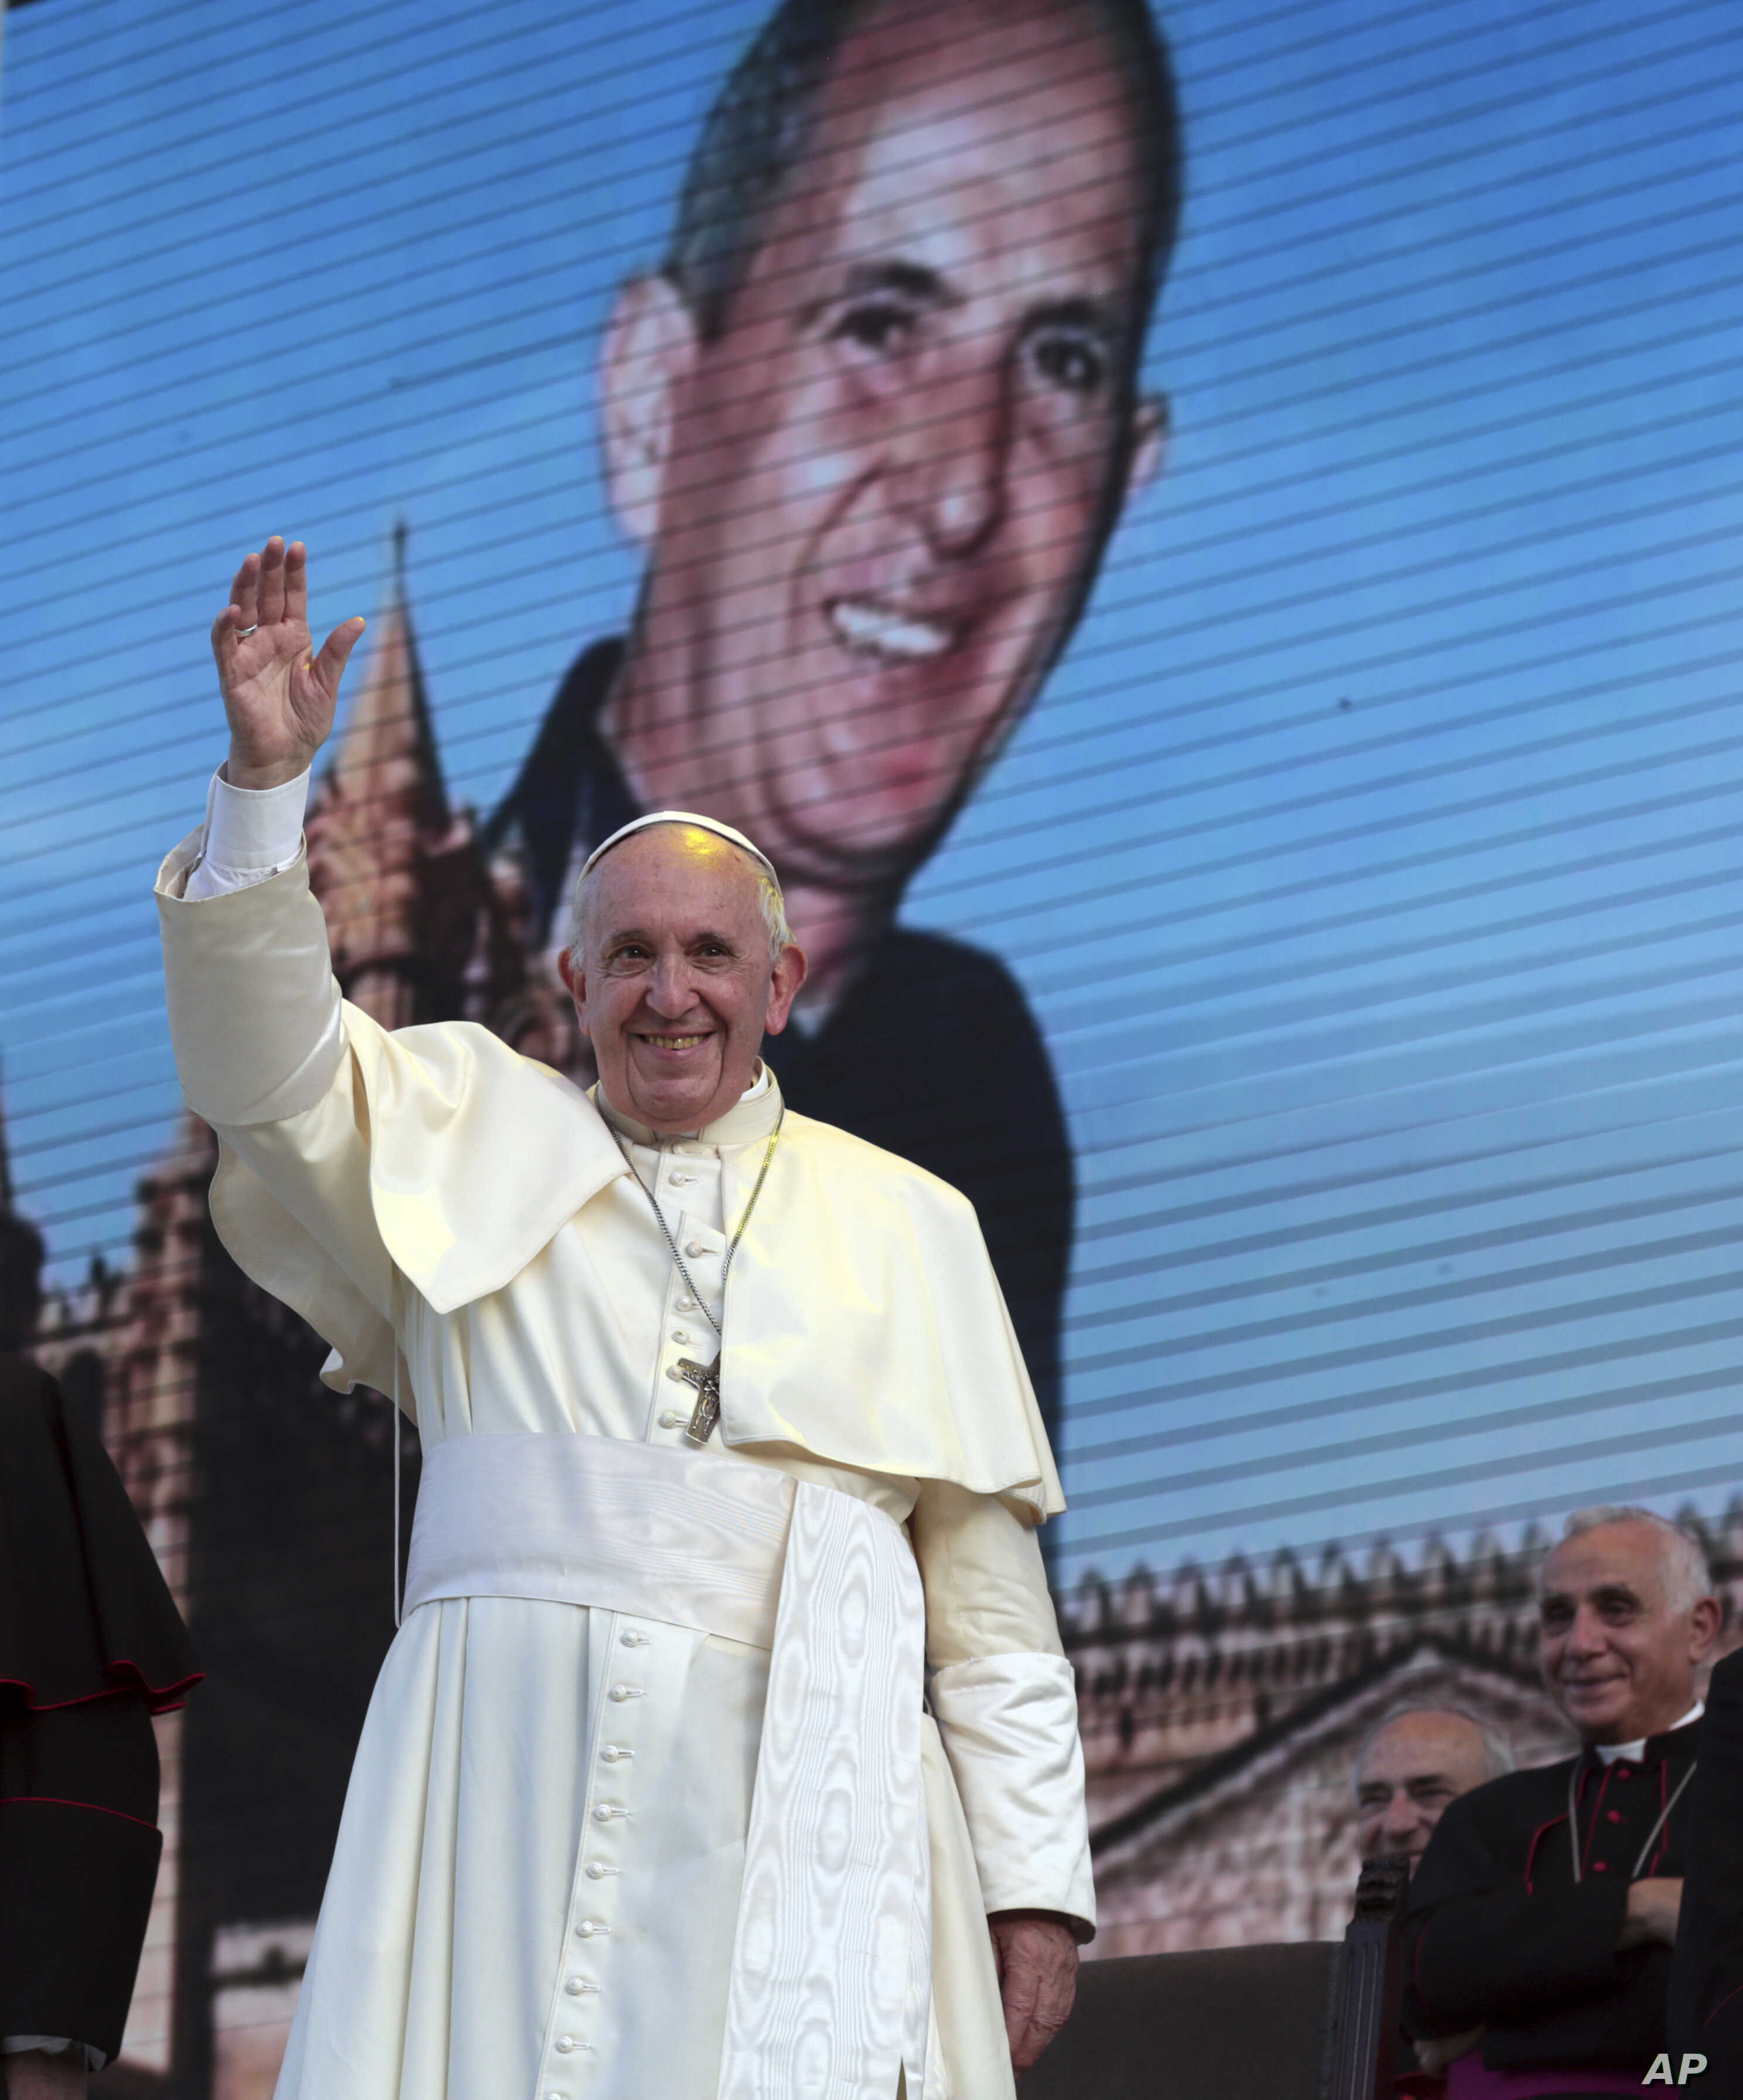 """Pope Francis waves as he leaves after a meeting with youths in Piazza Politeama, in Palermo, southern Italy, Sept. 15, 2018. The pontiff was paying tribute in Sicily to a priest, the Rev. Giuseppe """"Pino"""" Puglisi, who worked to keep youths away from t..."""